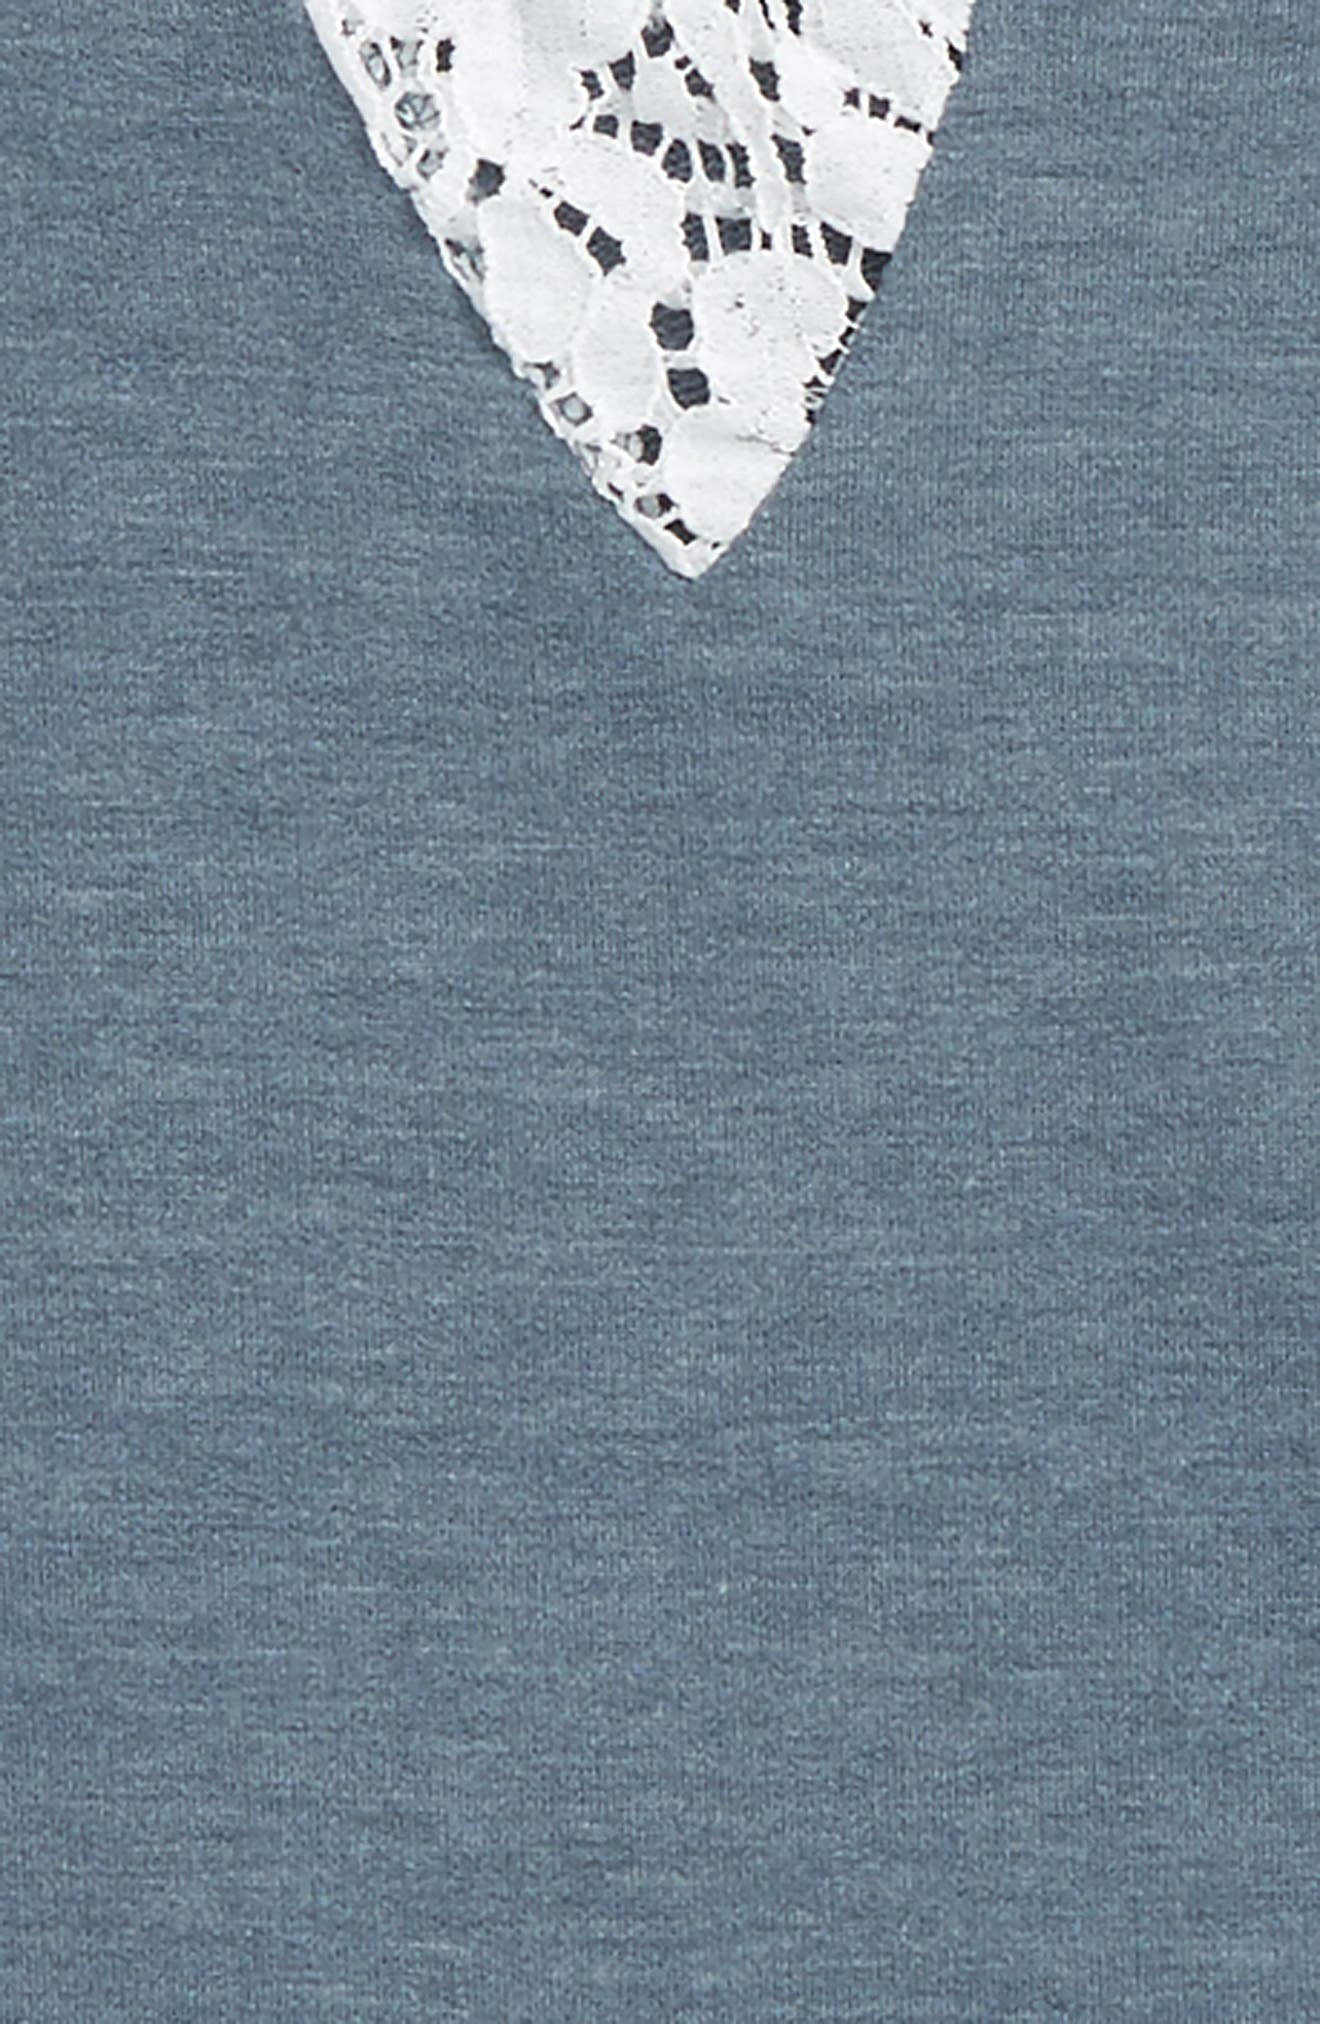 Alternate Image 2  - Good Luck Gem Lace Inset Sweatshirt (Big Girls)